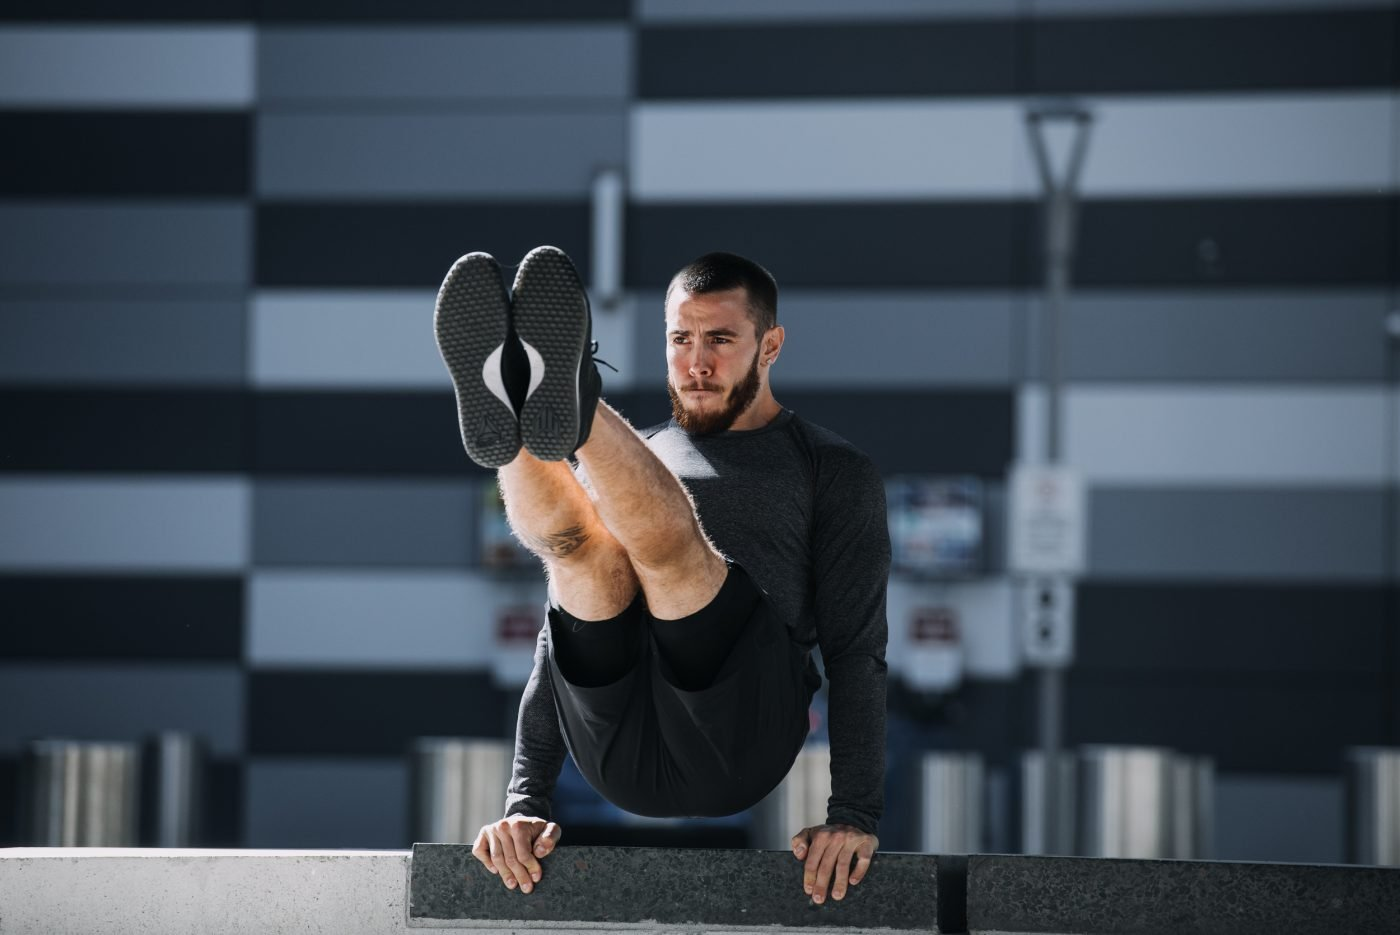 Getting Started With Calisthenics